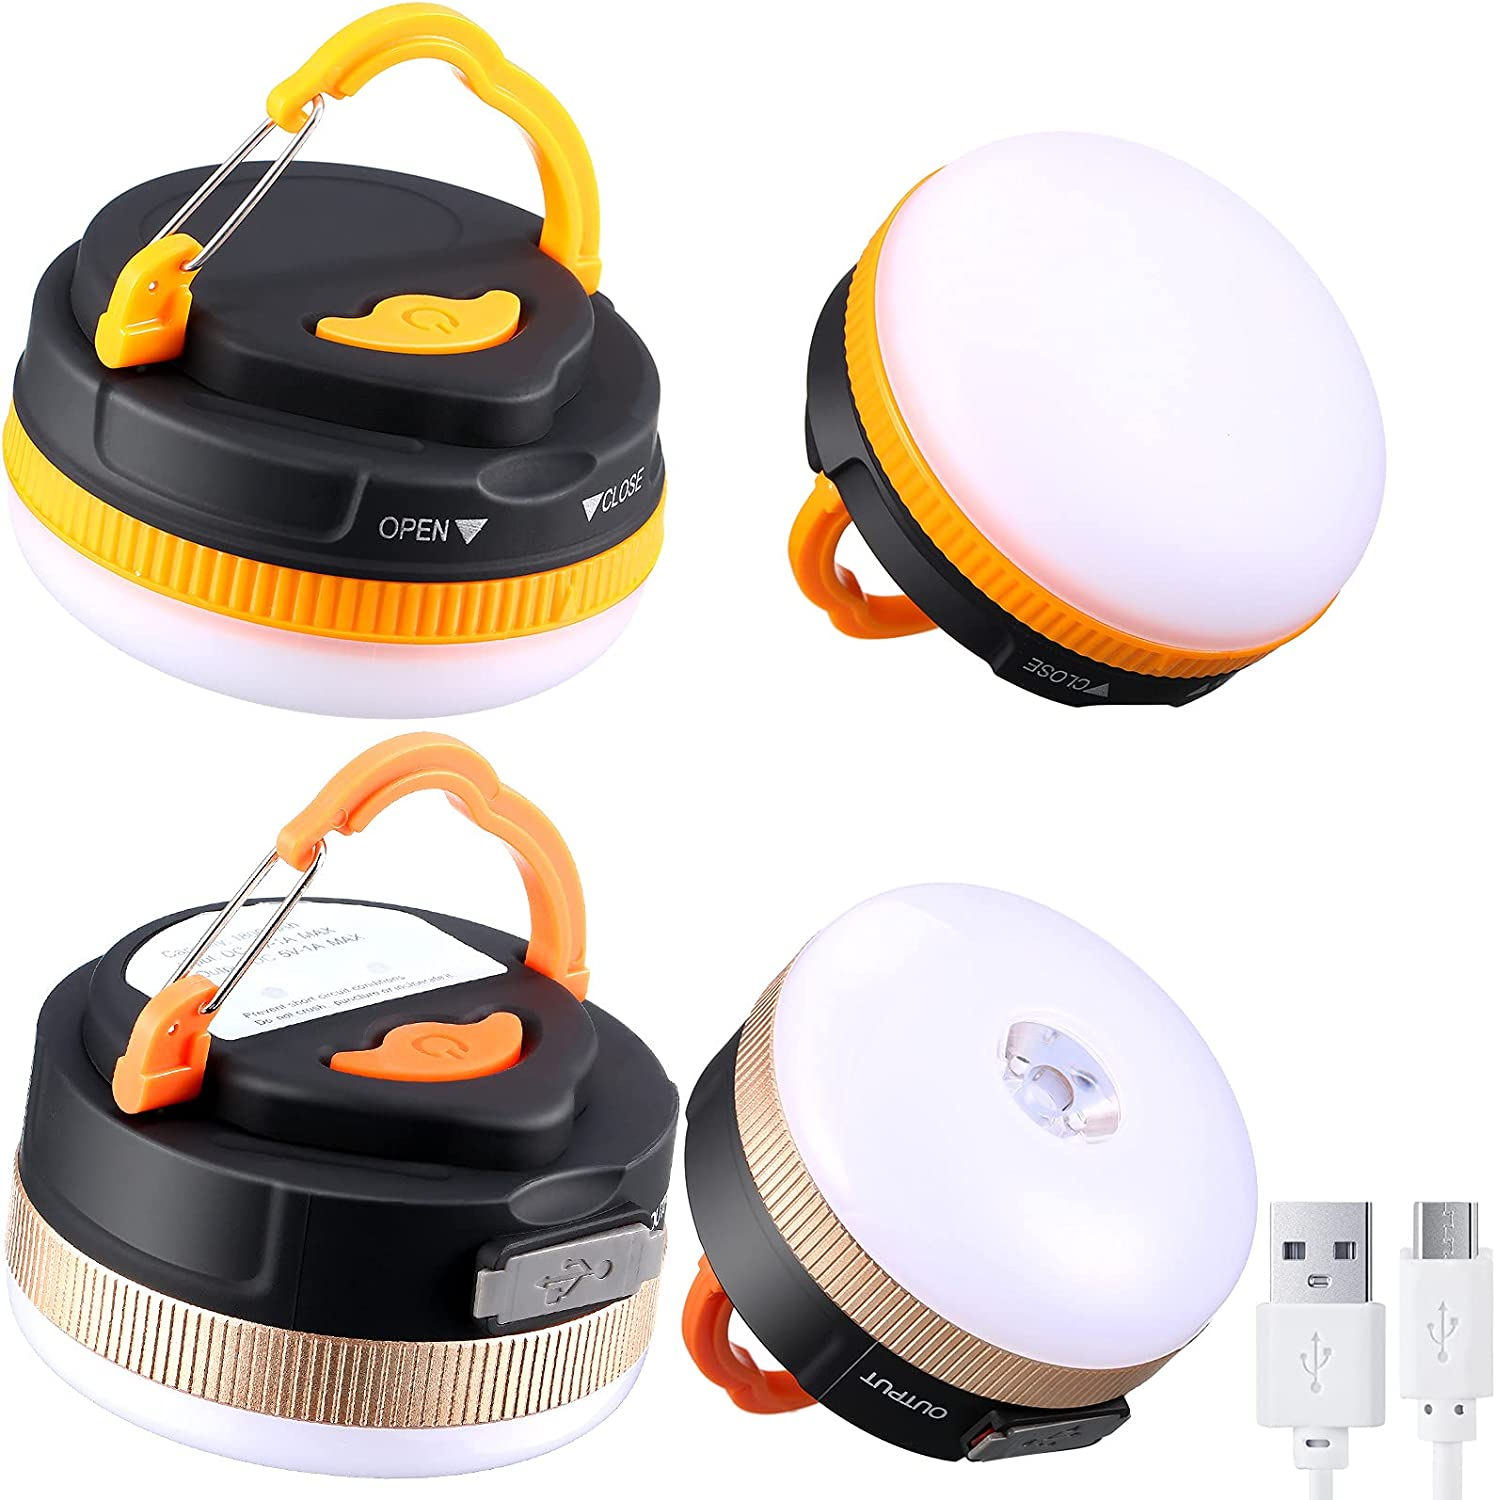 Honoson Sale Special Price 2 Pieces Max 50% OFF Tent Light Outdoor Bulb Camping LED Lantern 20